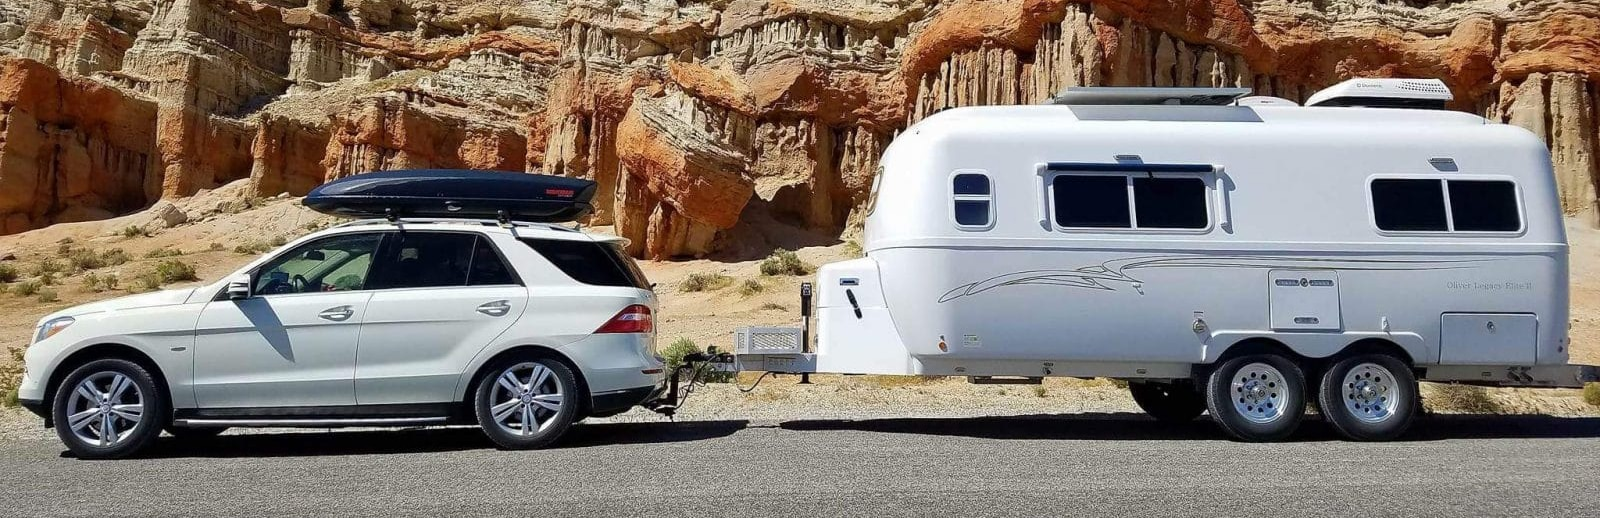 roaming times top 10 best travel trailer brands